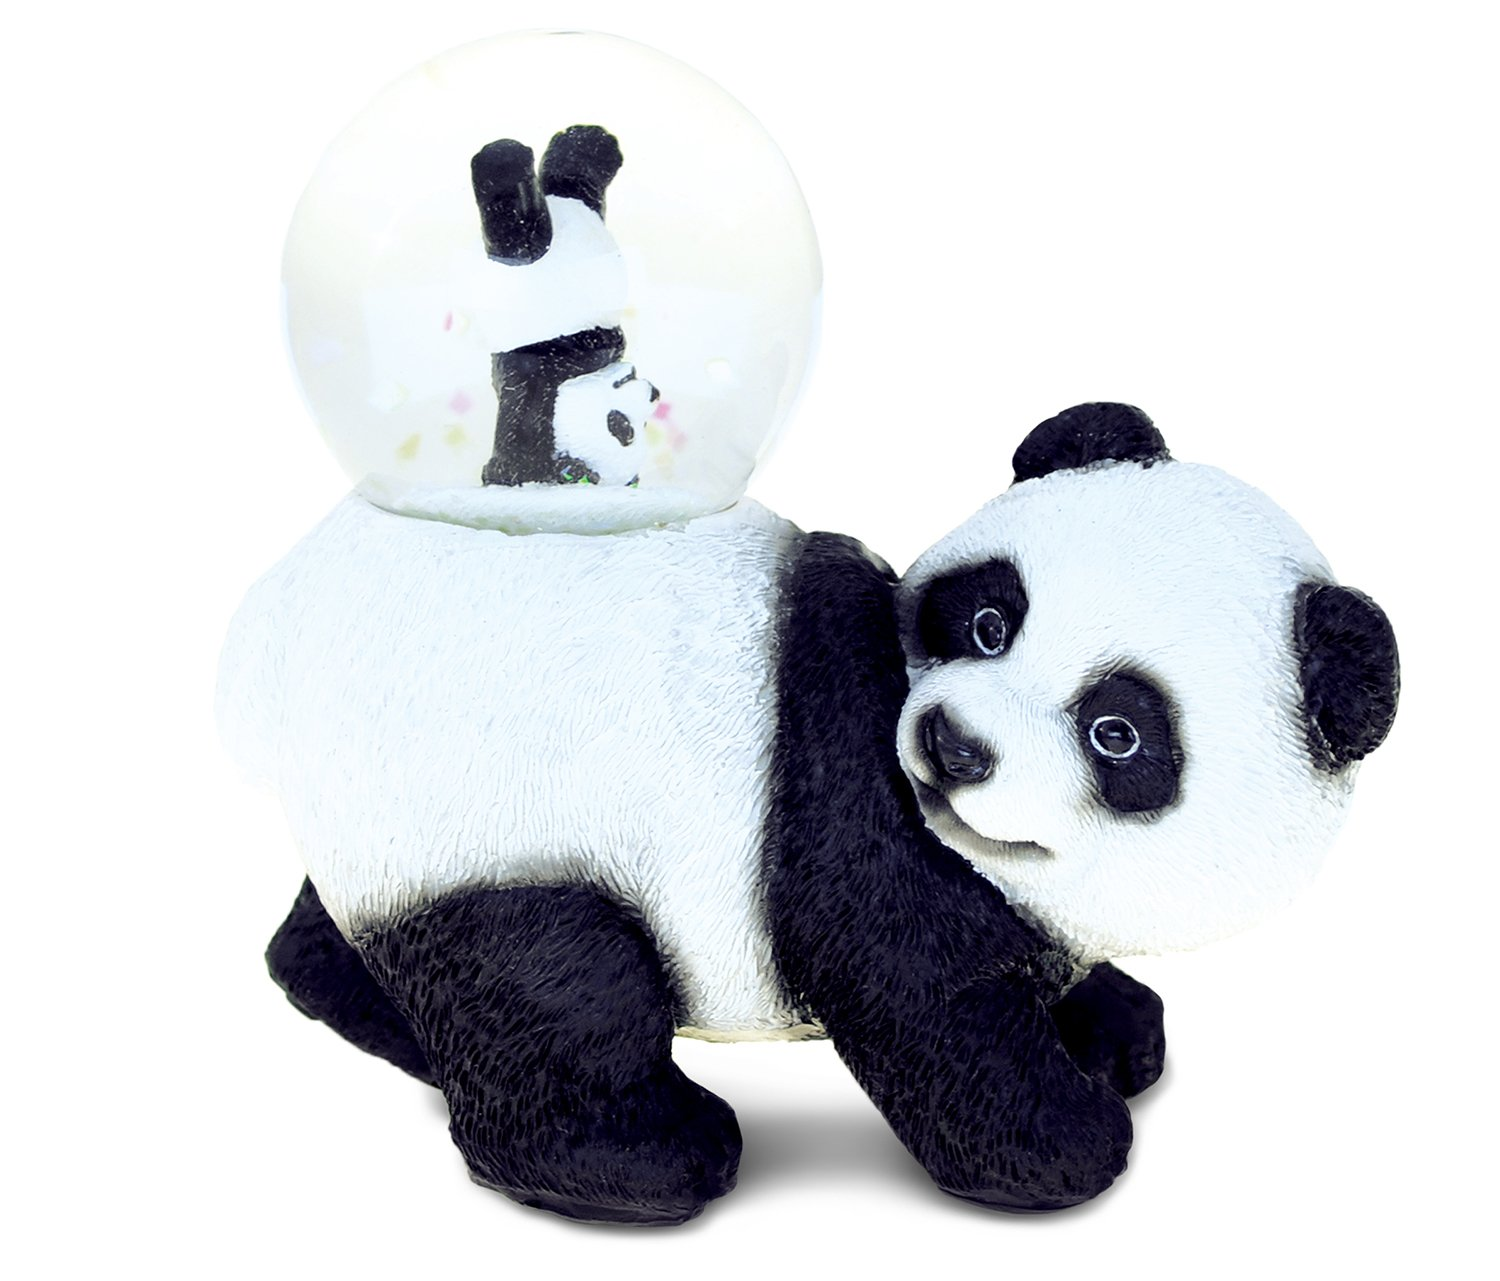 Puzzled Panda Snow Globe Mother And Baby Resin Stone Finish Animal Theme Collectibles - Playful Miniature Bear Cub Souvenir 45MM Elegant Figurine Family Friends Gifts - Animals Collection - Item 9468